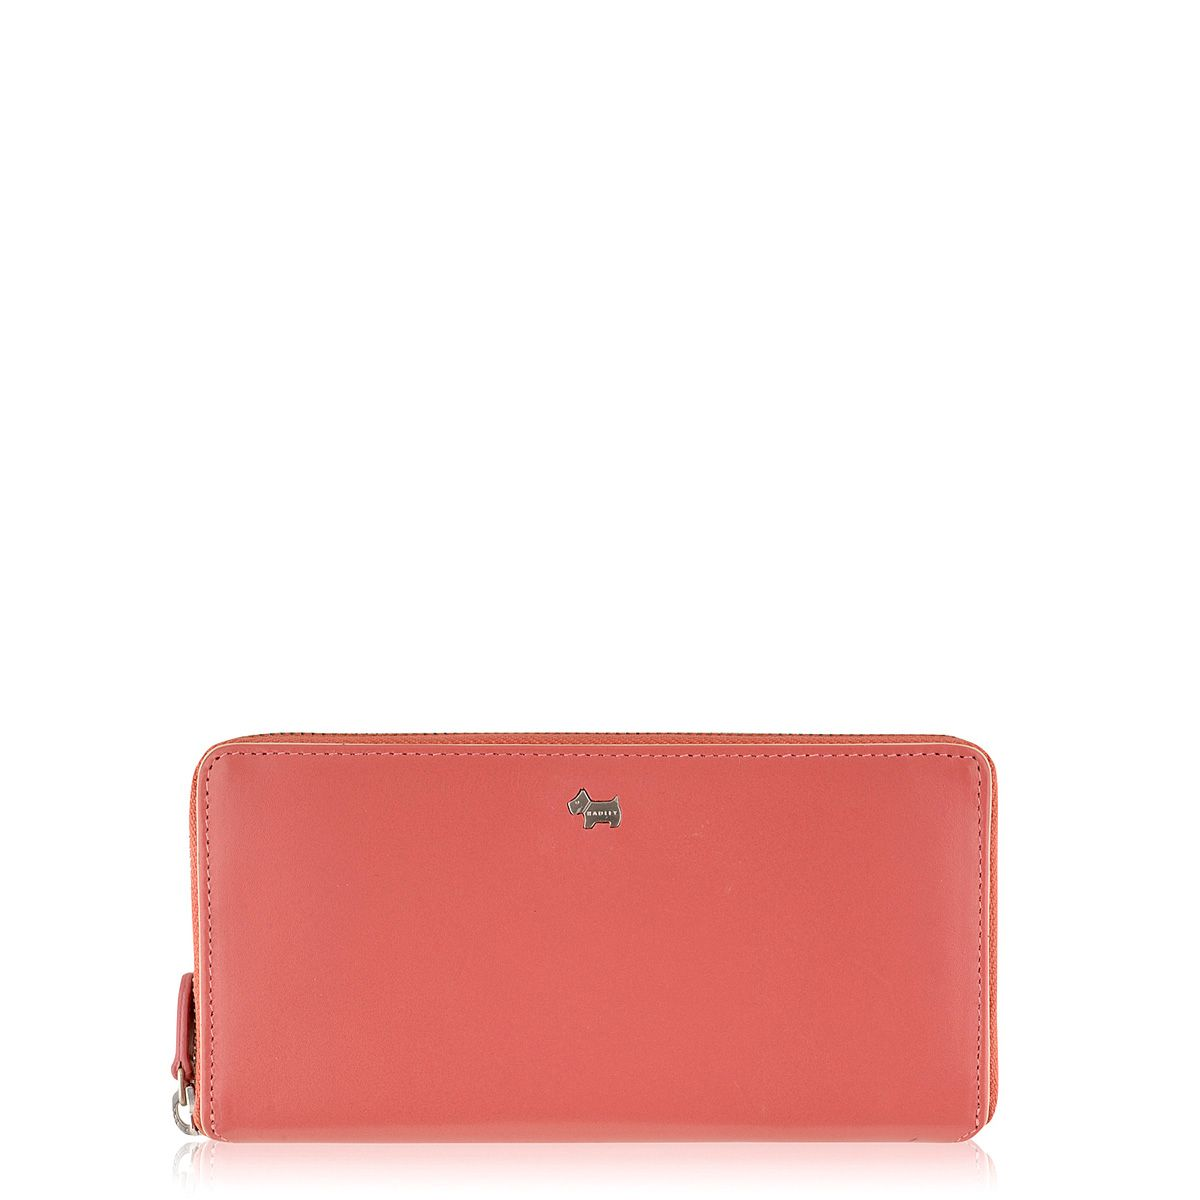 Blair large coral zip around purse